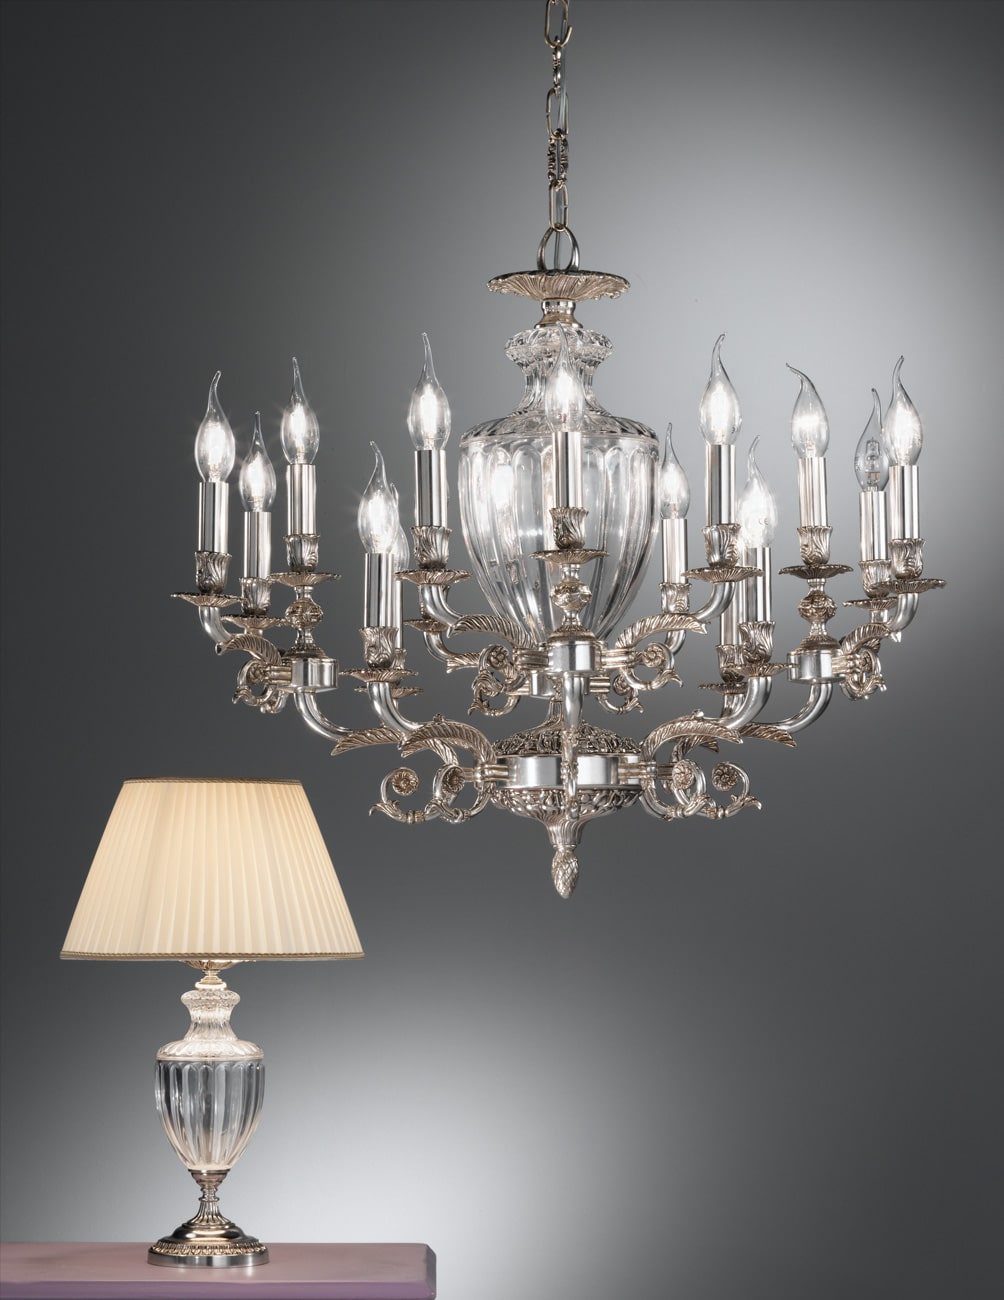 decorative lighting chandeliers 27